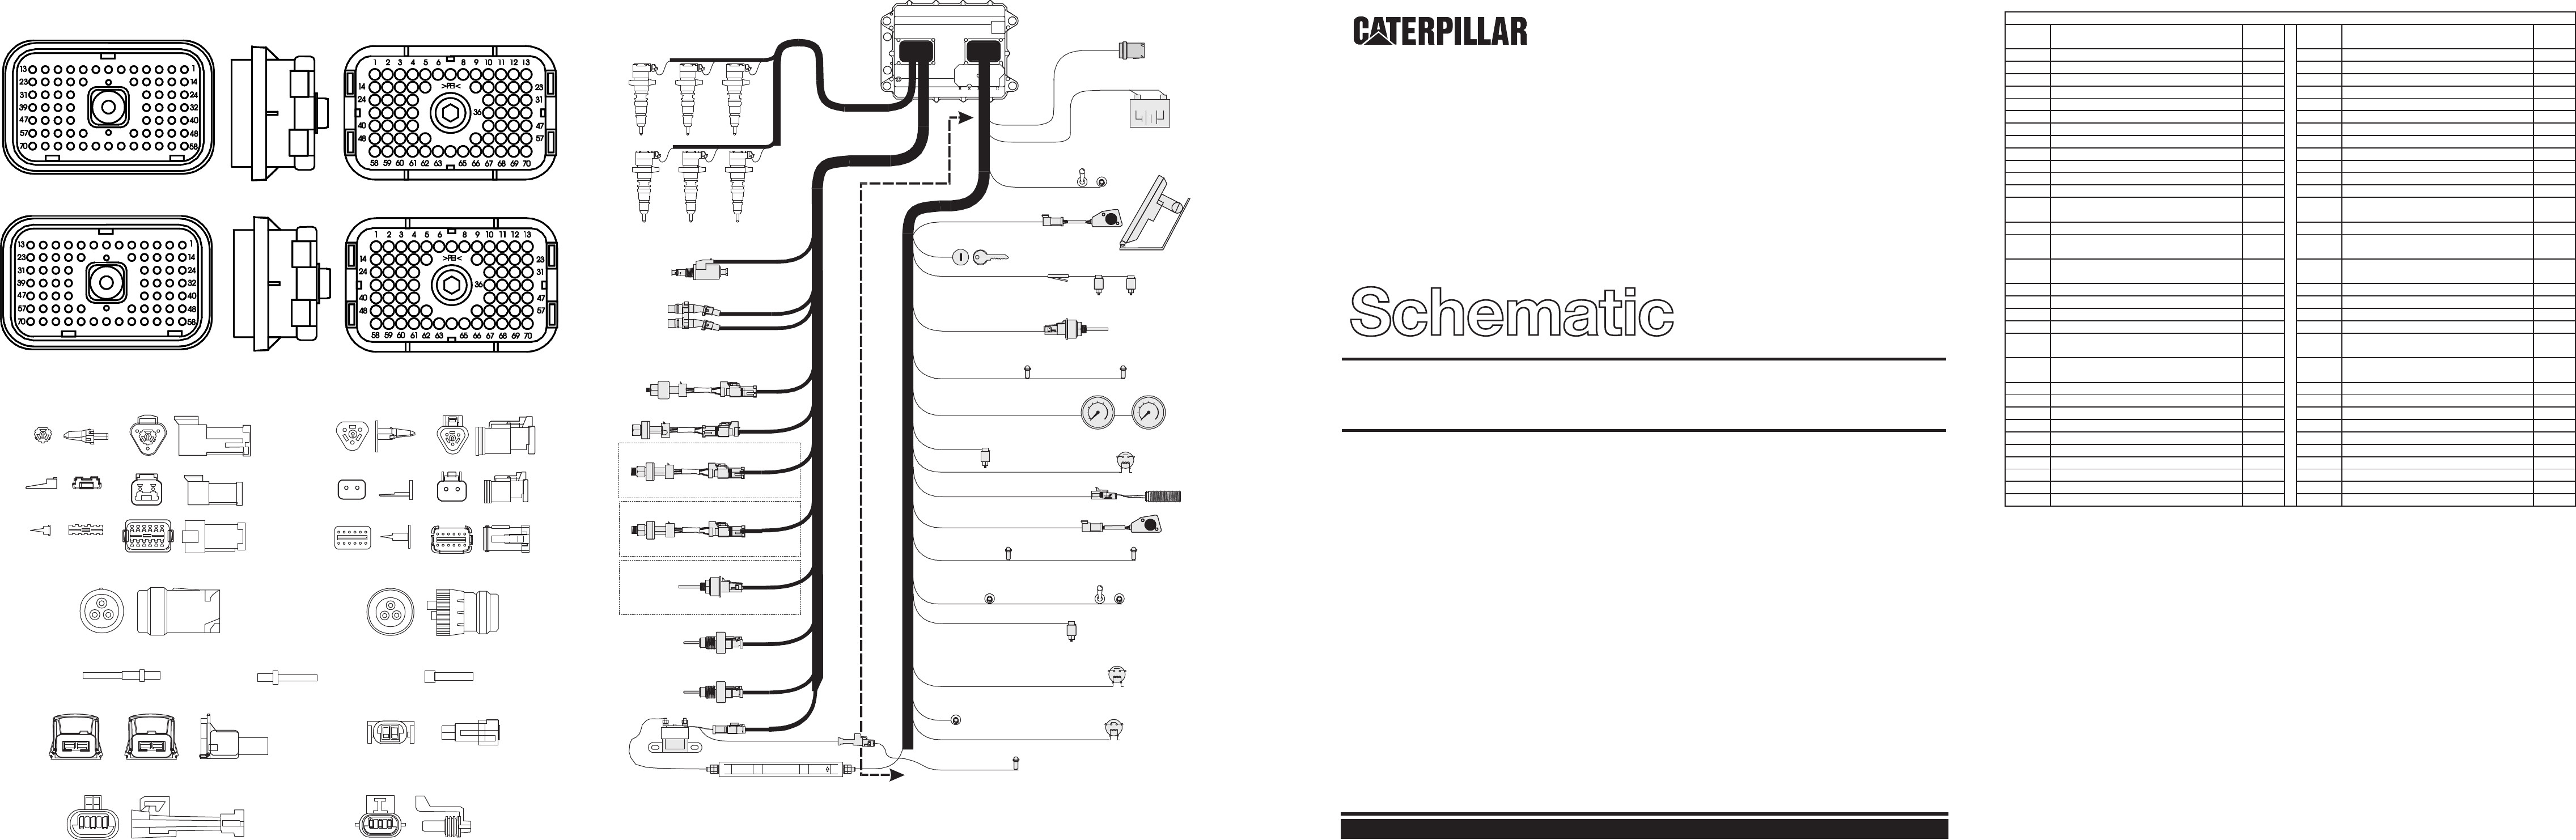 3126 caterpillar ecm diagram online wiring diagram